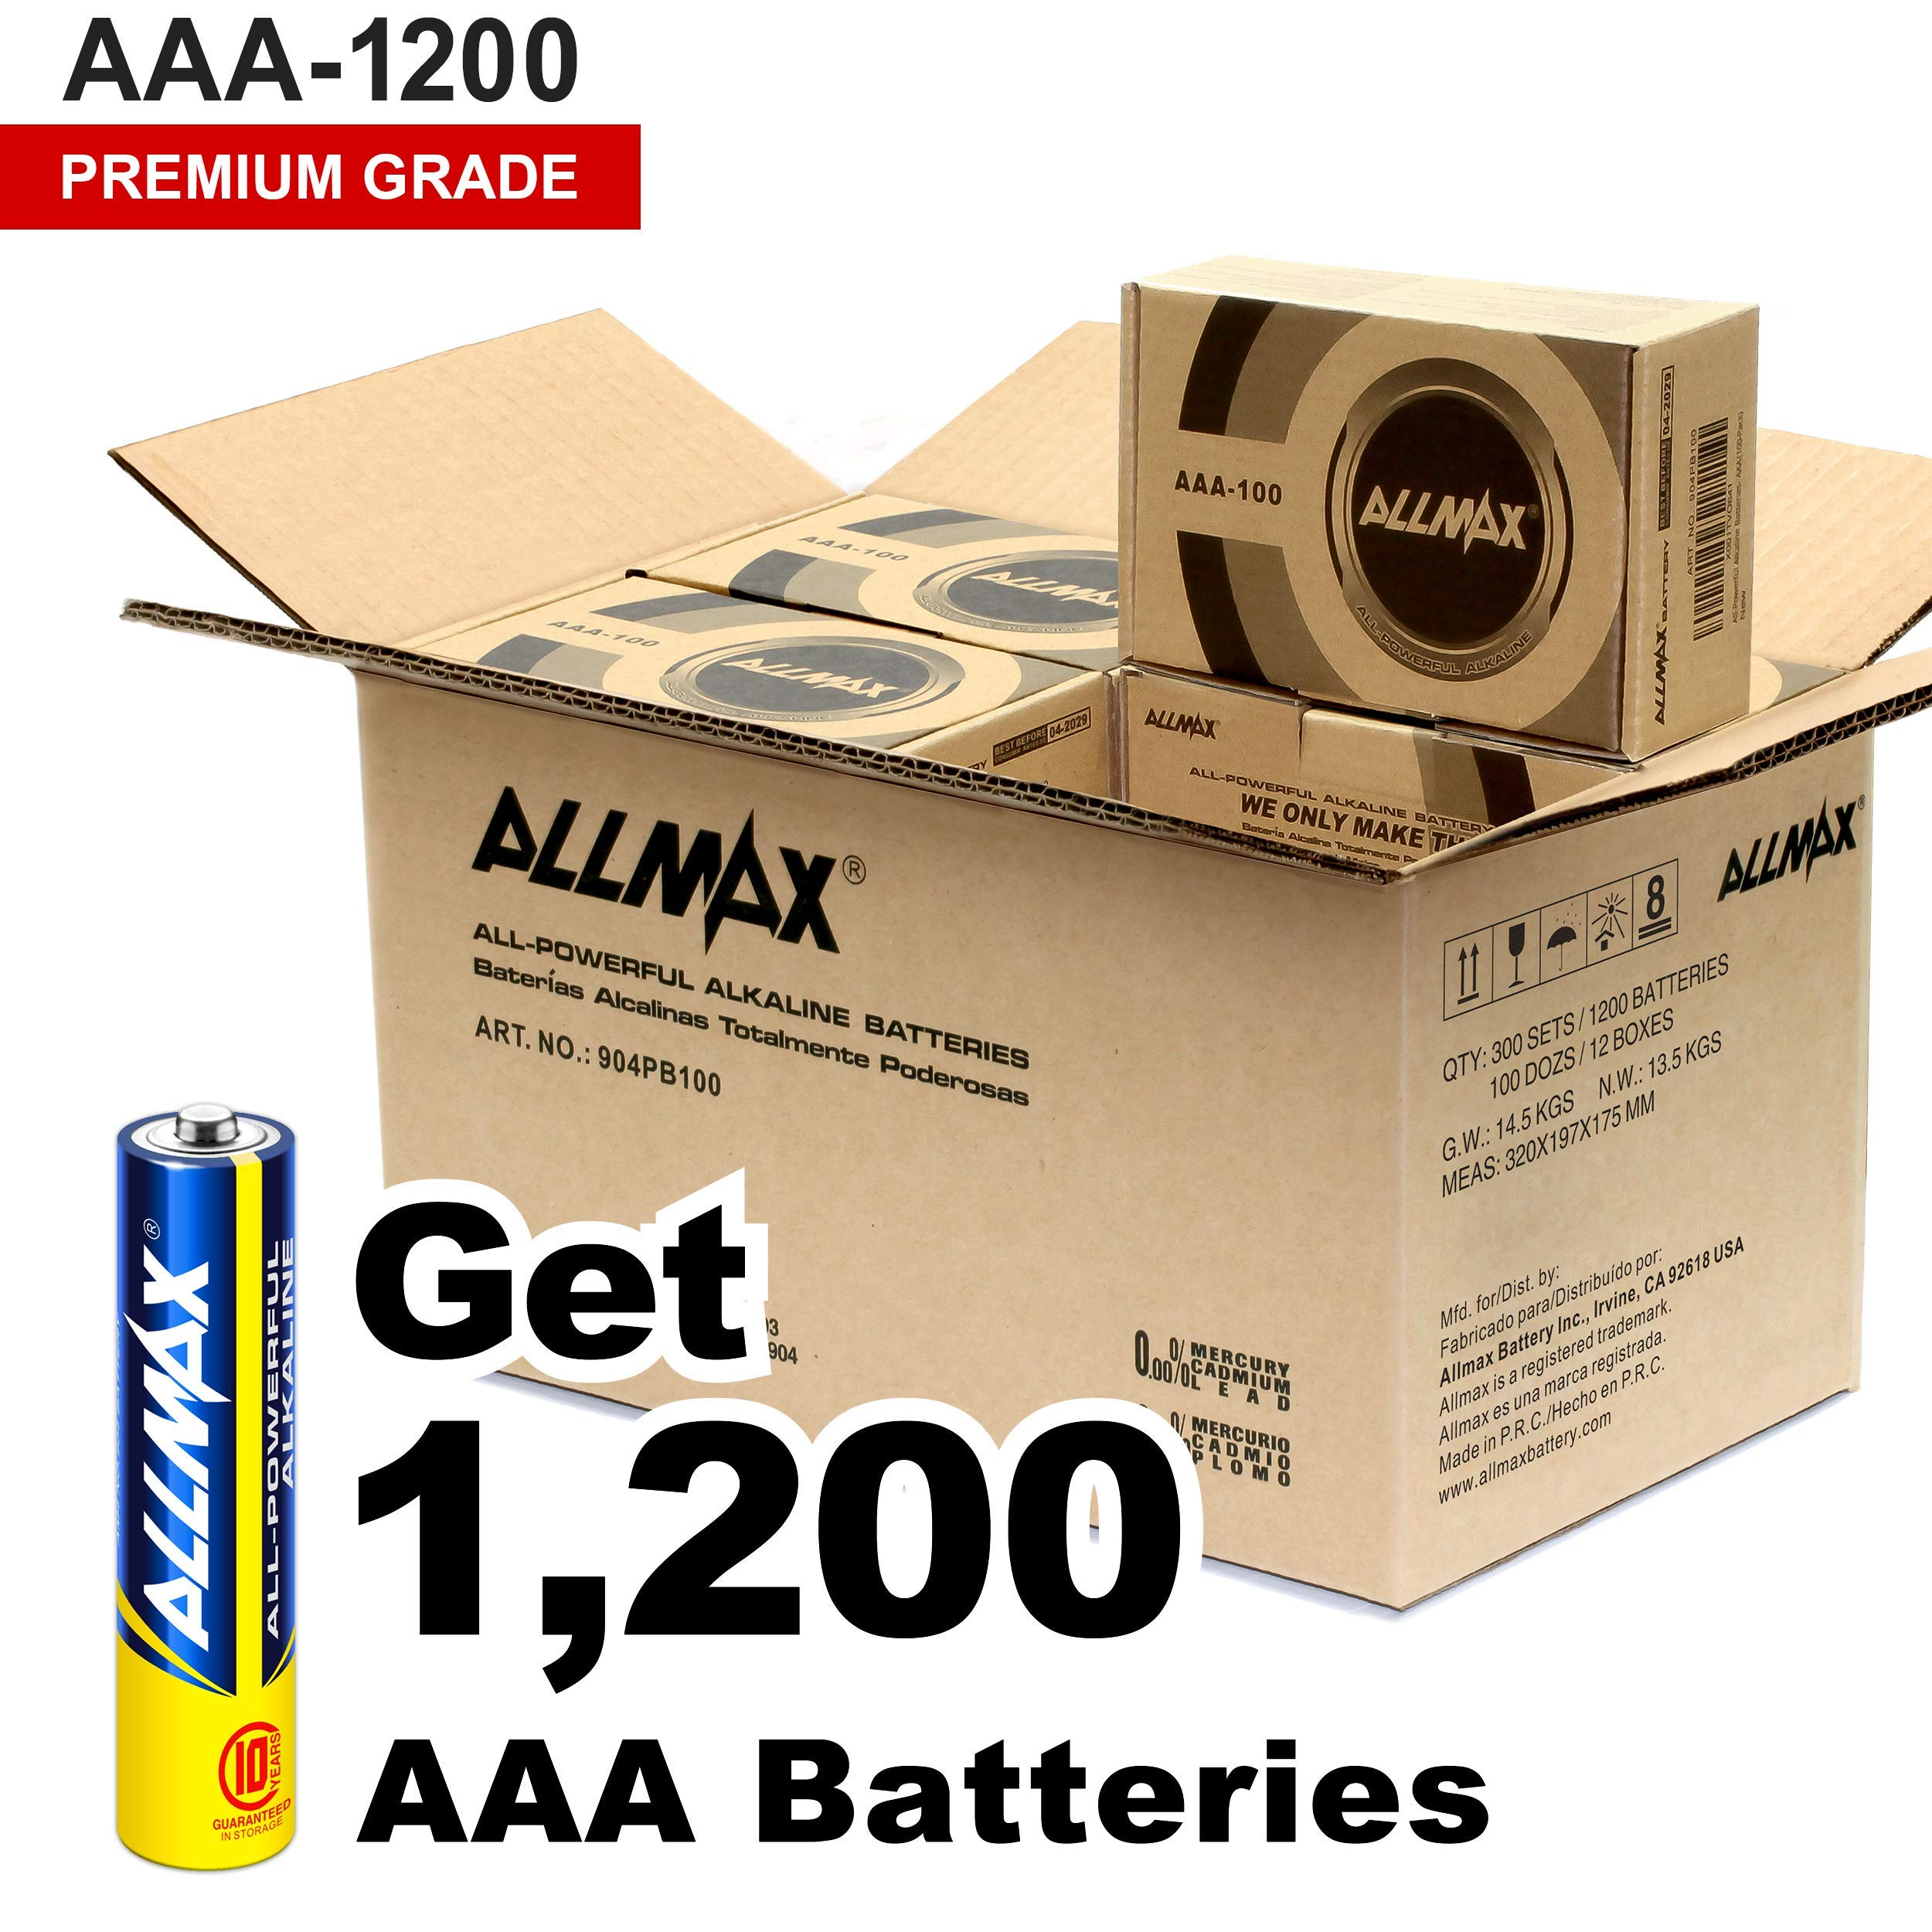 ALLMAX All-Powerful Alkaline Batteries - AAA Wholesale Pack (1200-Count) - Premium Grade, Ultra Long-Lasting and Leak Proof with EnergyCircle Technology (1.5 Volt) by ALLMAX BATTERY